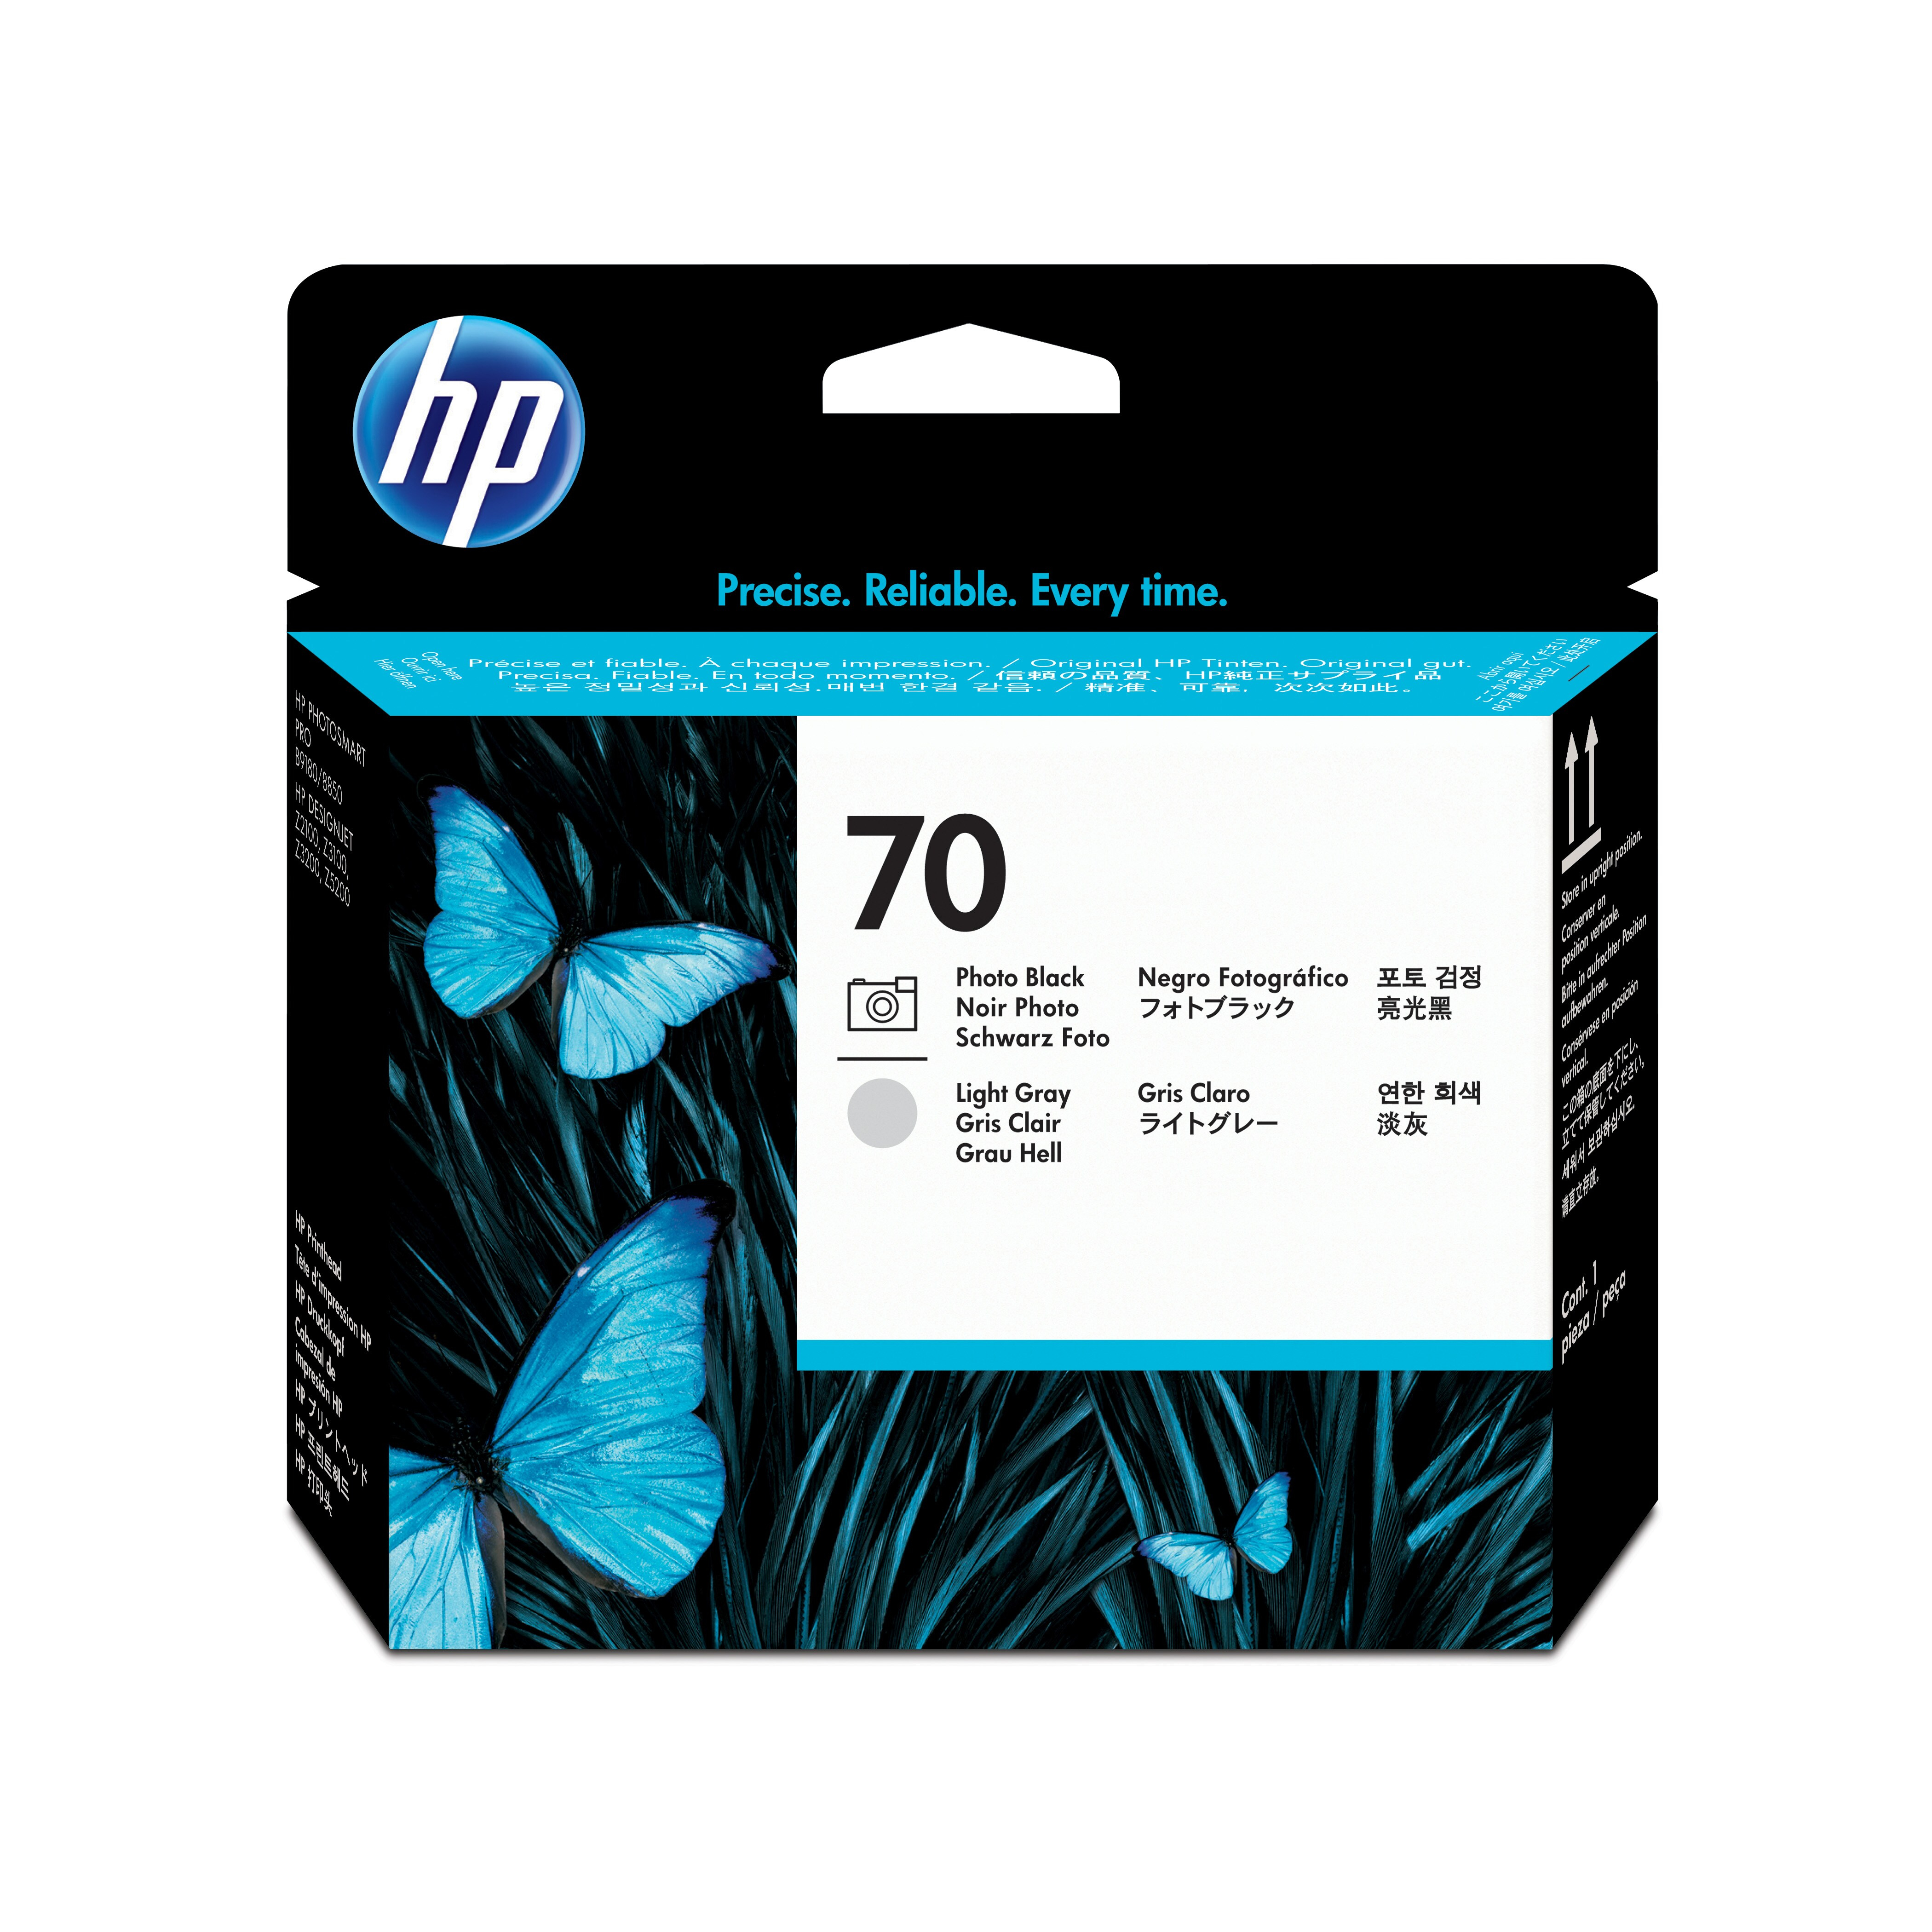 HP No. 70 Ink Printhead - Photo Black & Light Grey C9407a